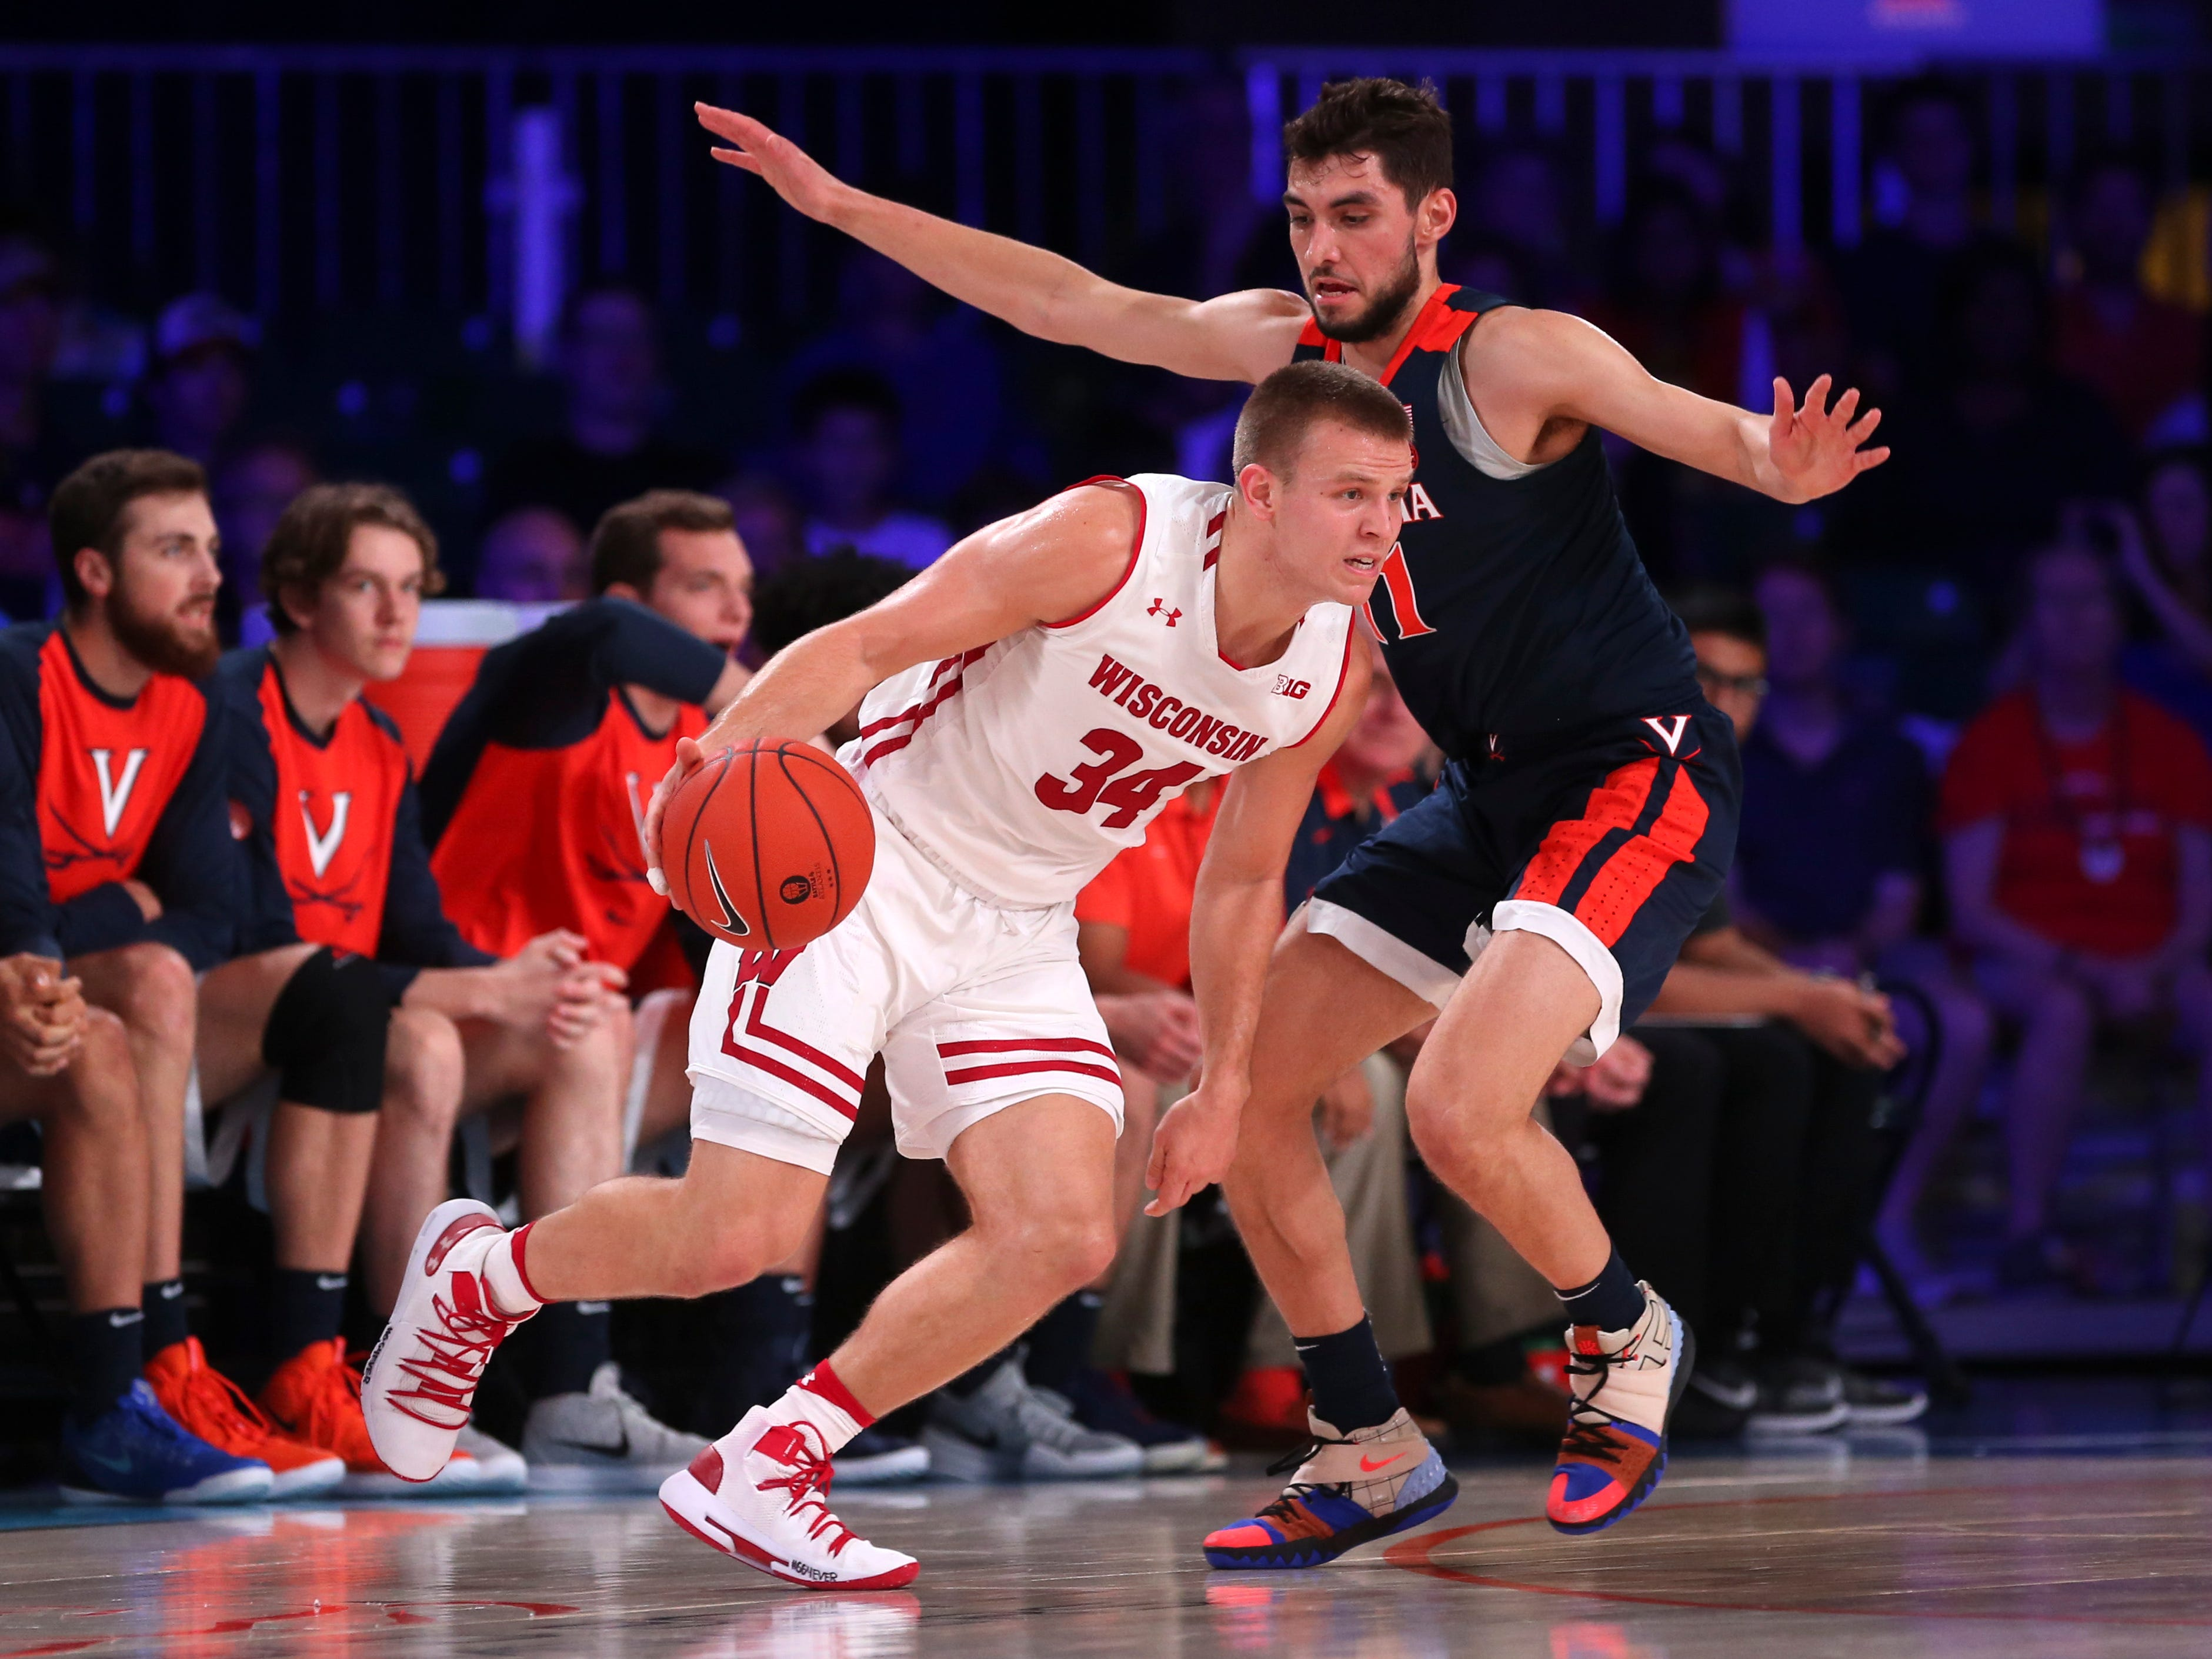 Badgers guard Brad Davison tries to get around Virginia's Ty Jerome.